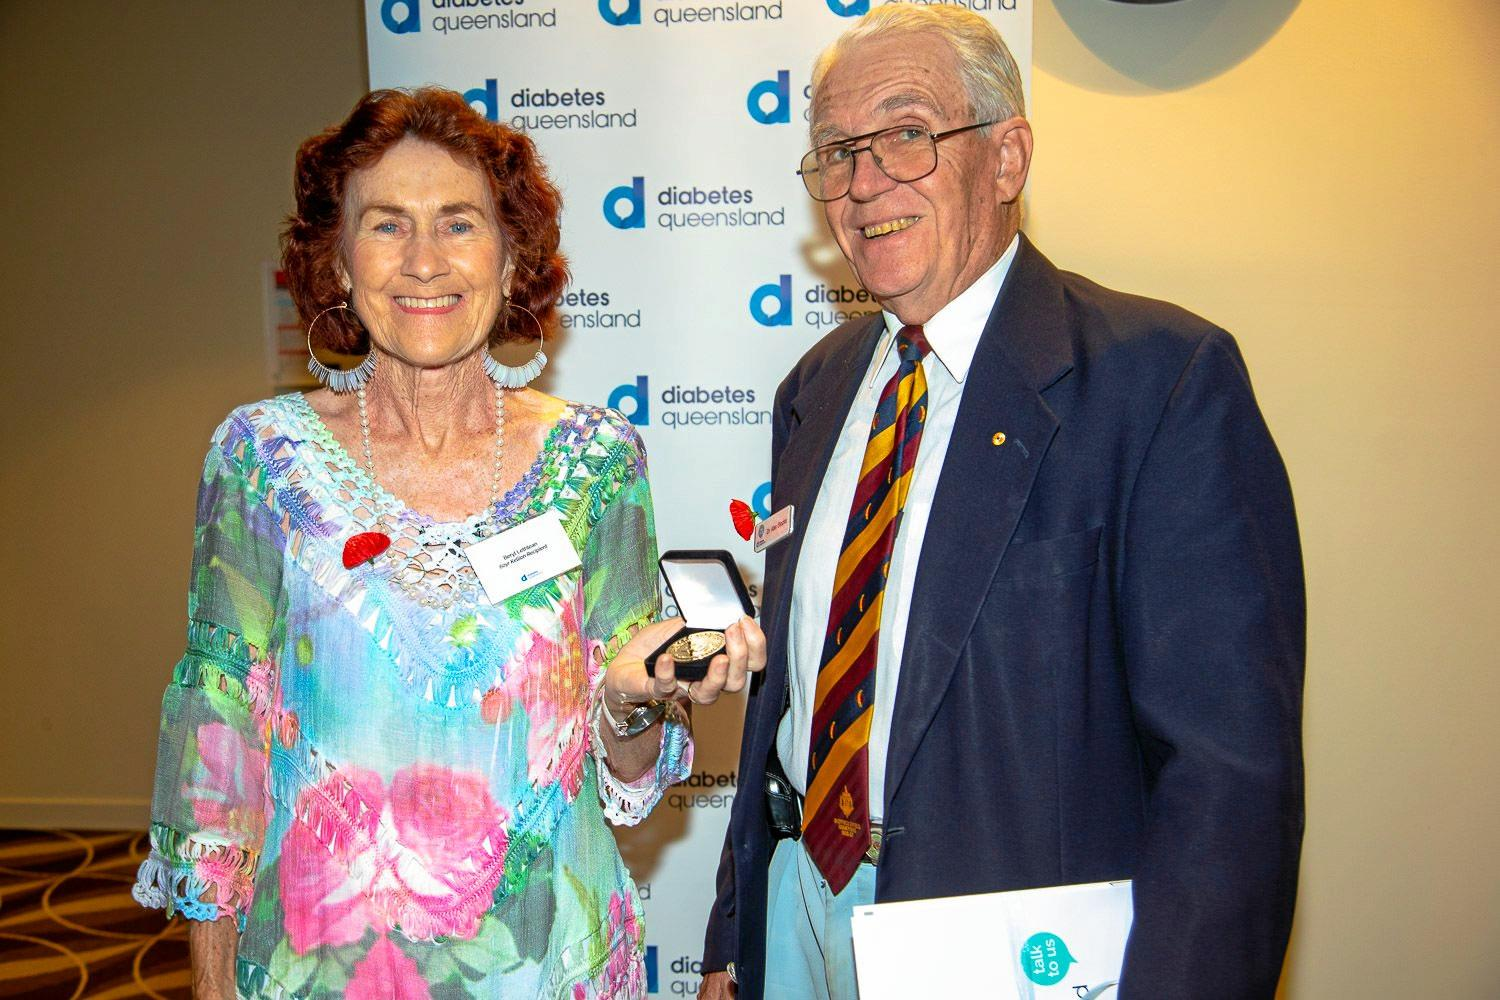 Point Vernon woman Beryl Lethlean received her 60 year medallion from Dr Alan Stocks AM of the Kellion Diabetes Foundation.